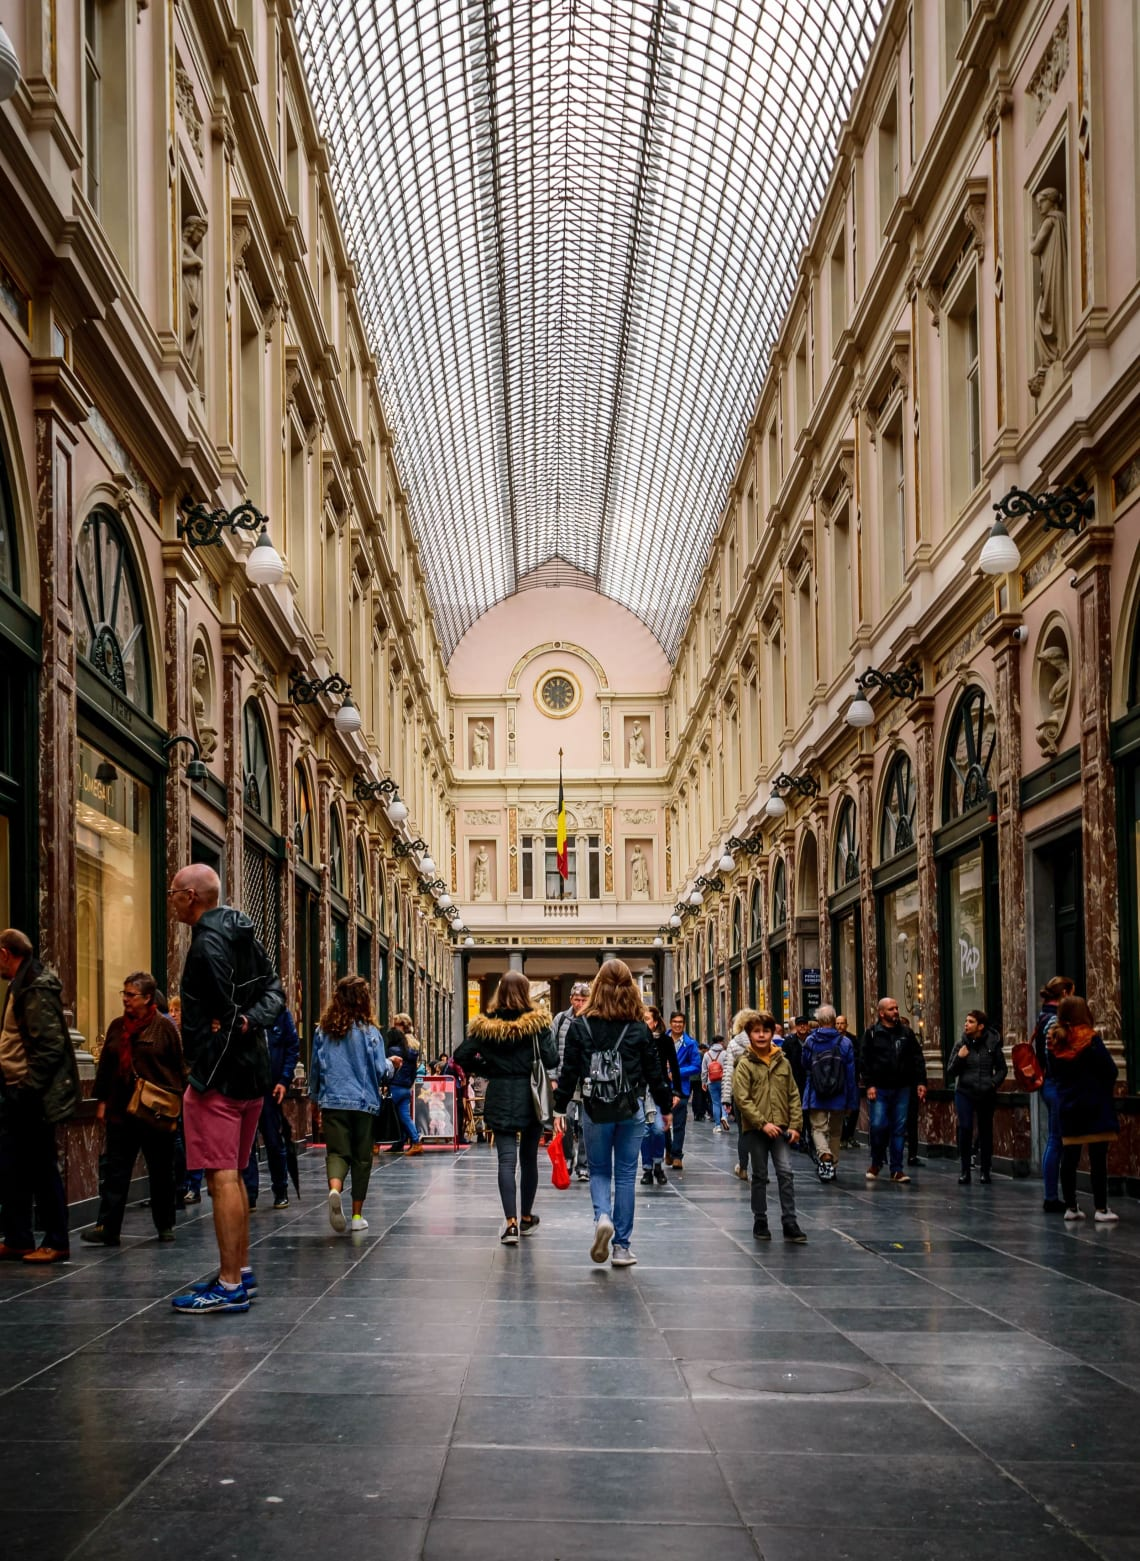 Places to visit in Brussels: Galeries Royales Saint-Hubert